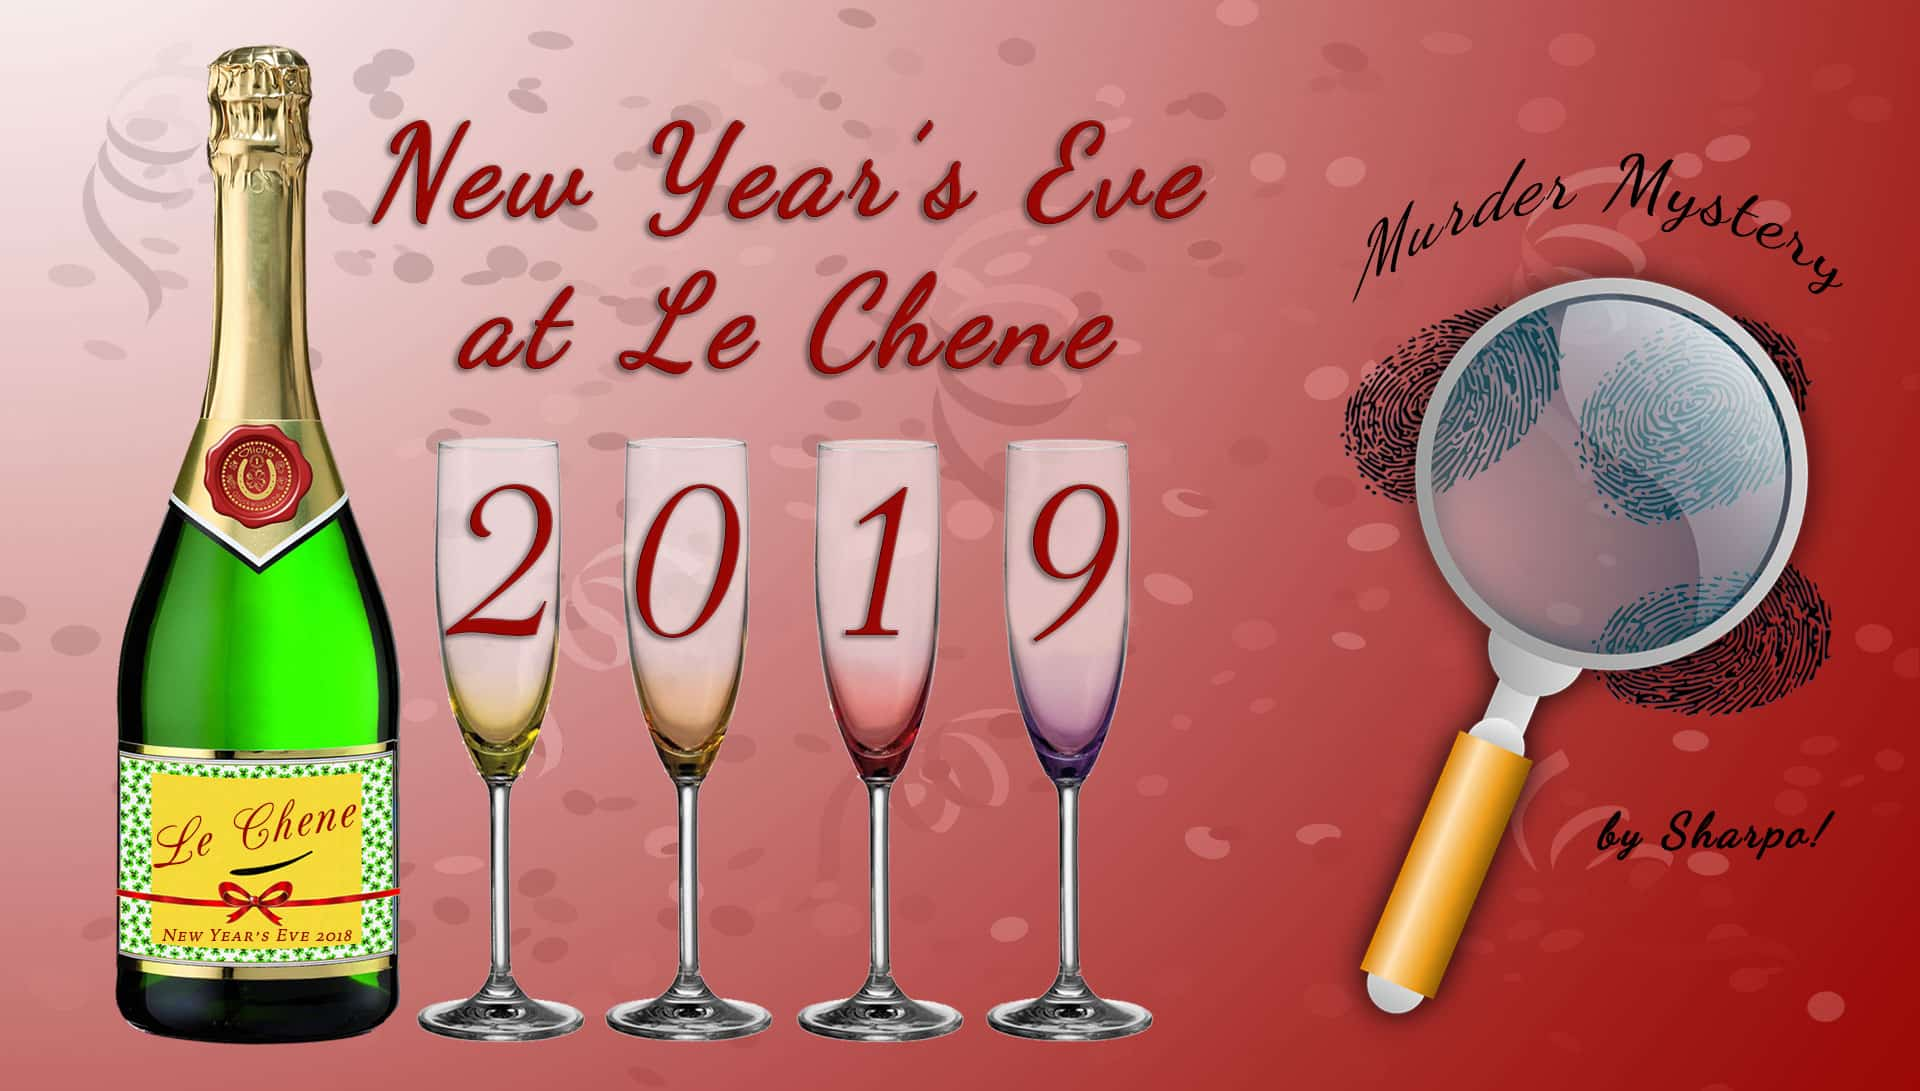 Le Chene New Year's Eve - 2019 Murder Mystery Event